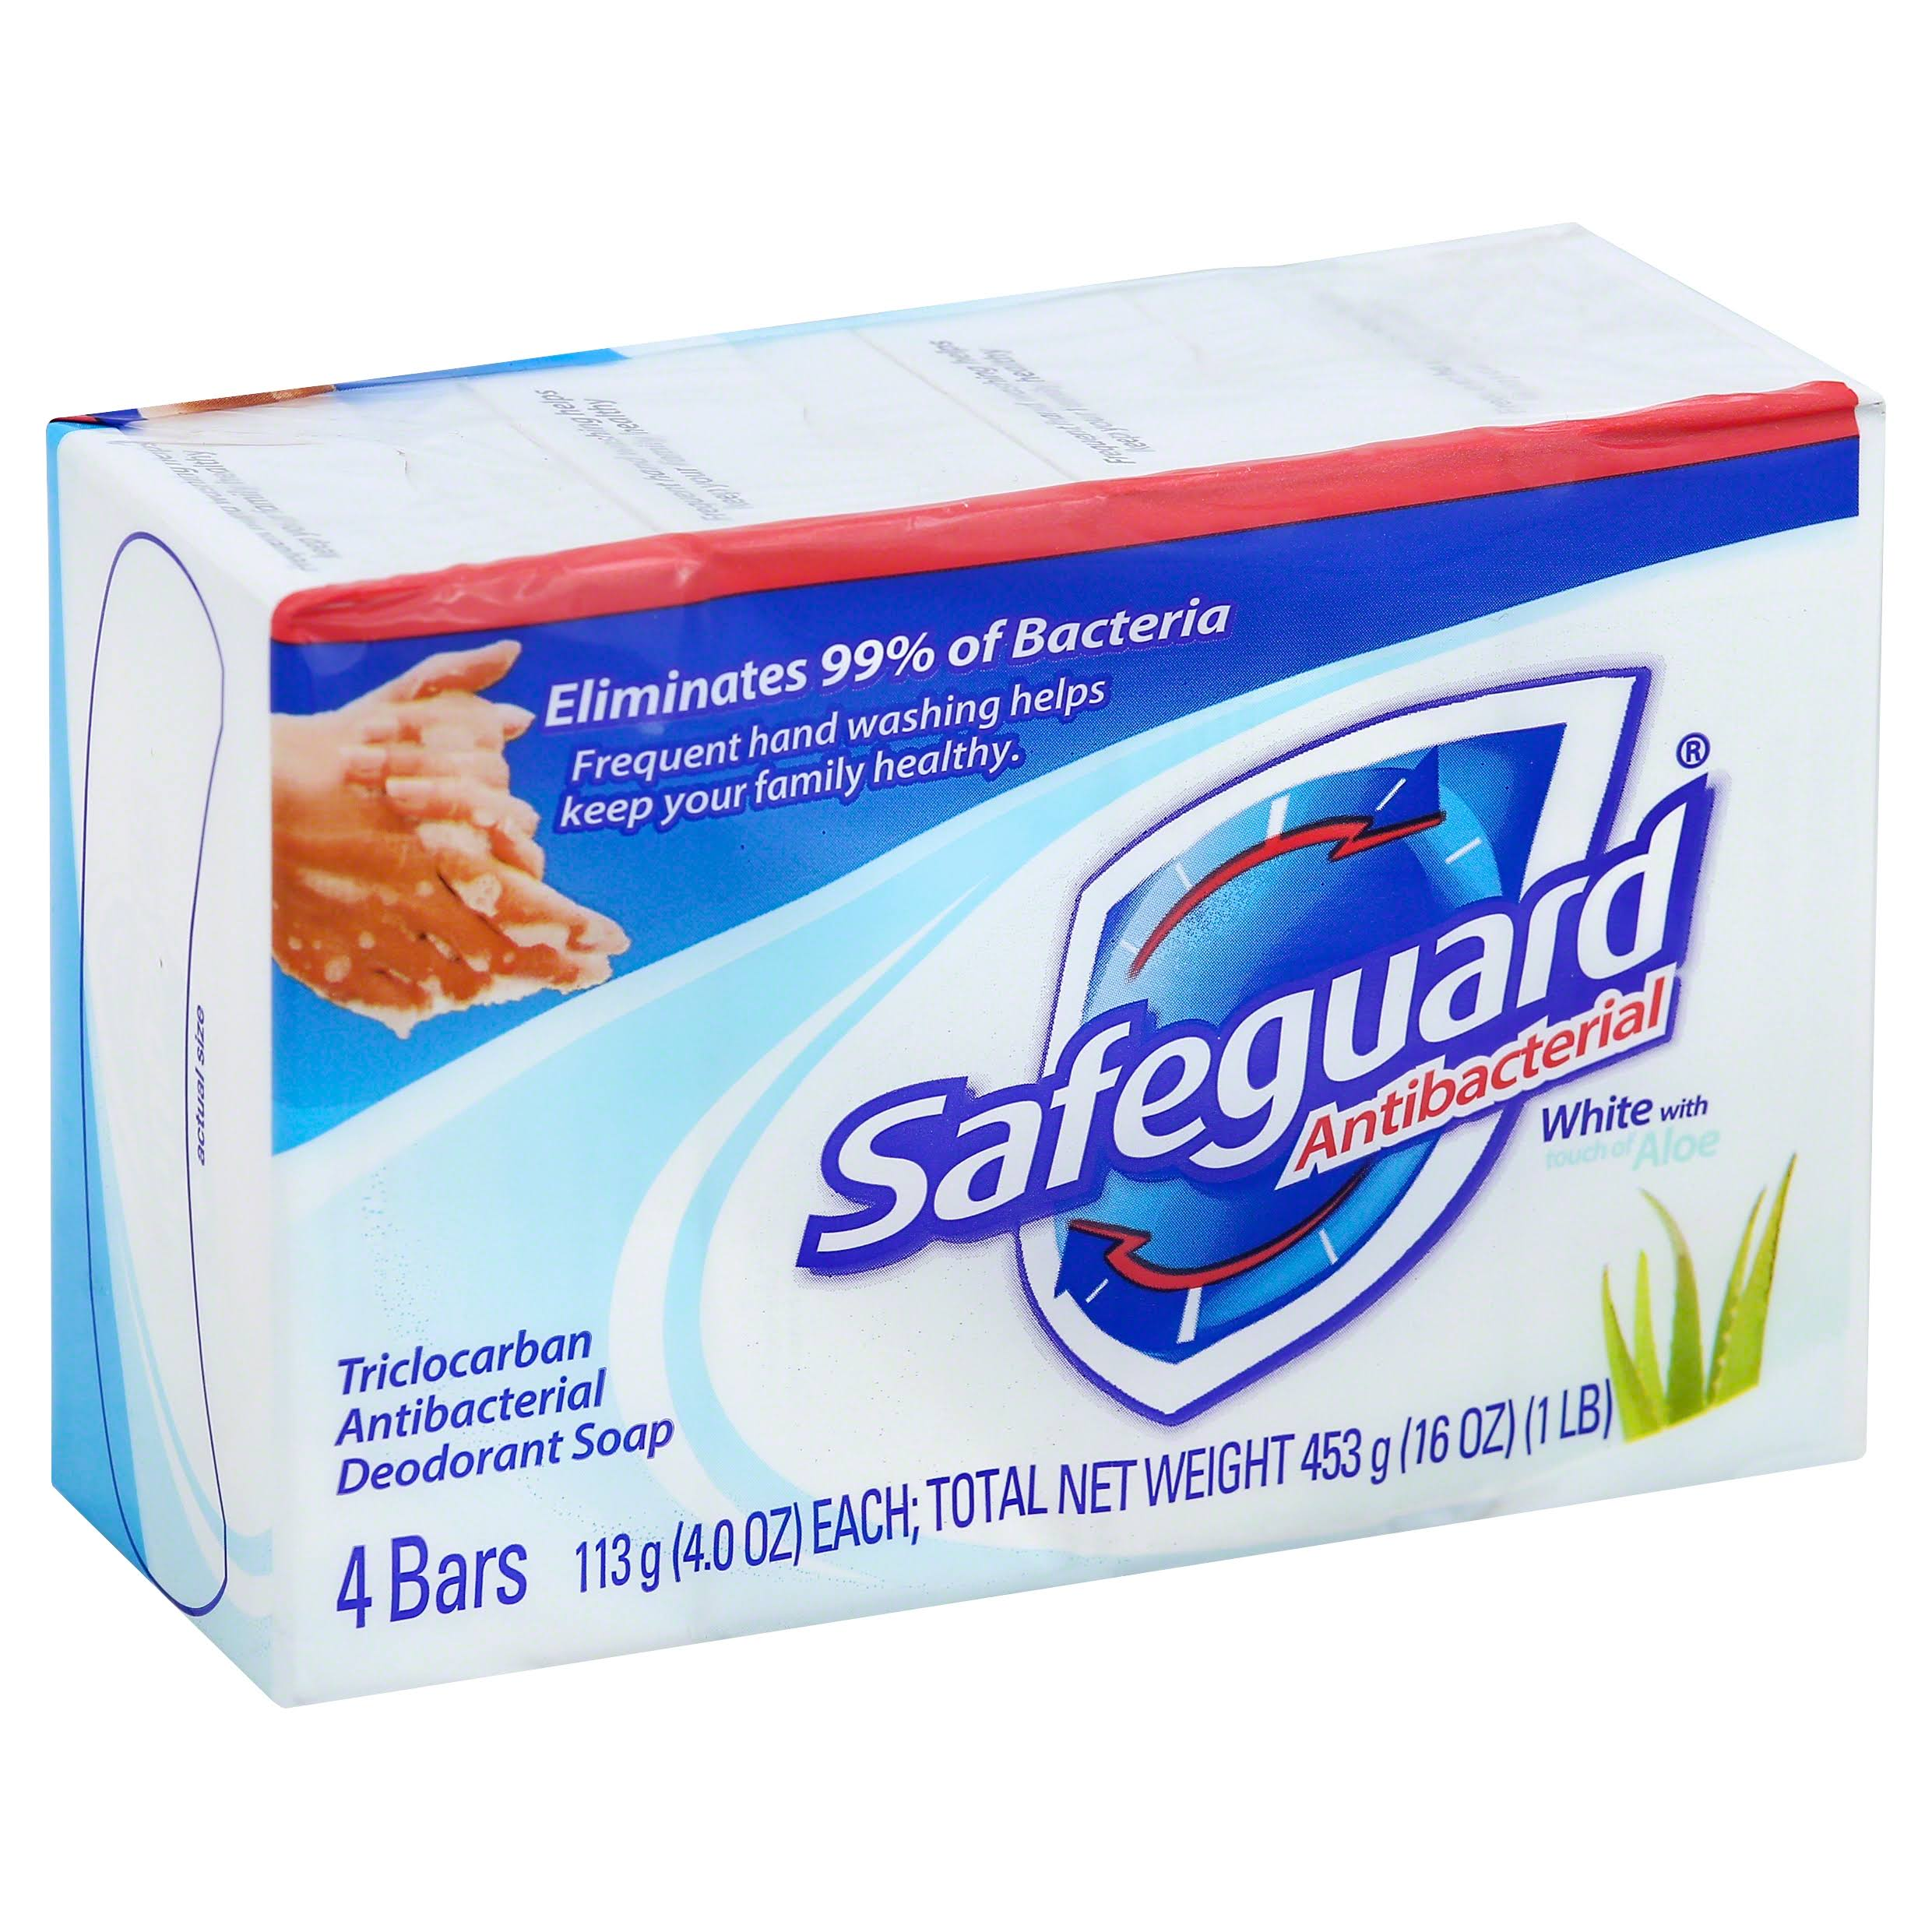 Safeguard Antibacterial Deodorant Soap - 4 Bars